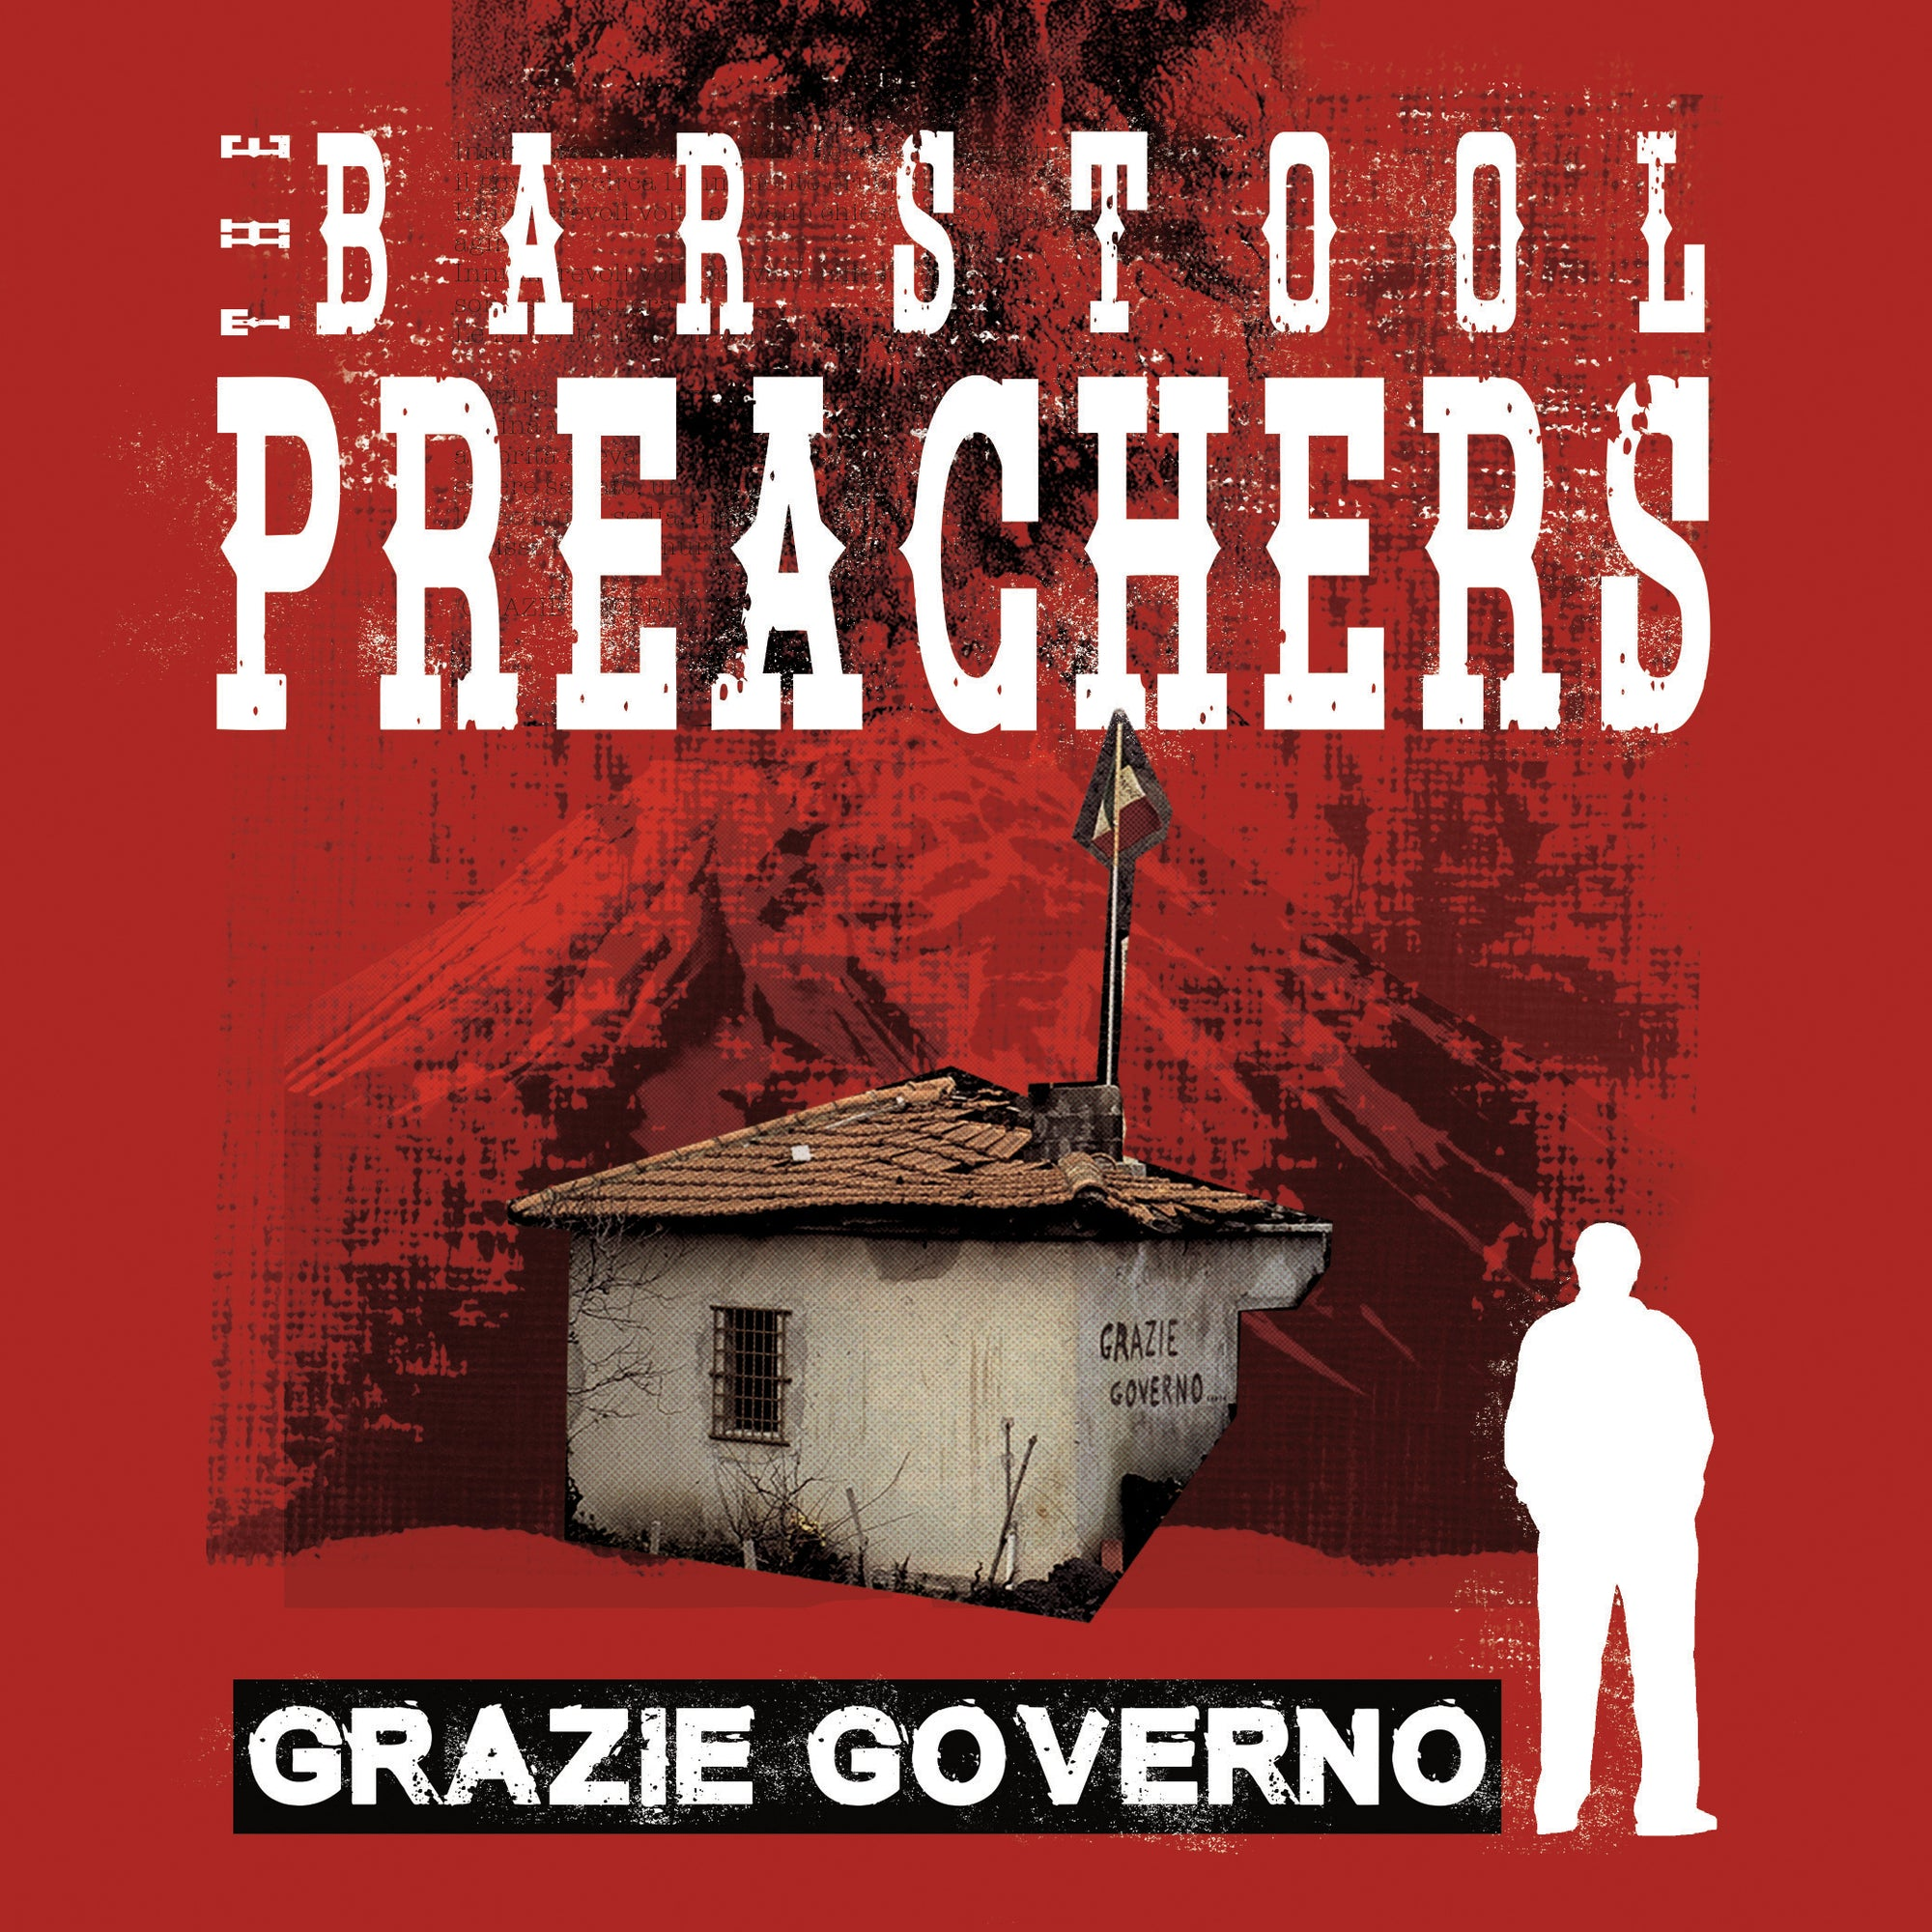 The Bar Stool Preachers - Grazie Governo LP / CD / Digital Download